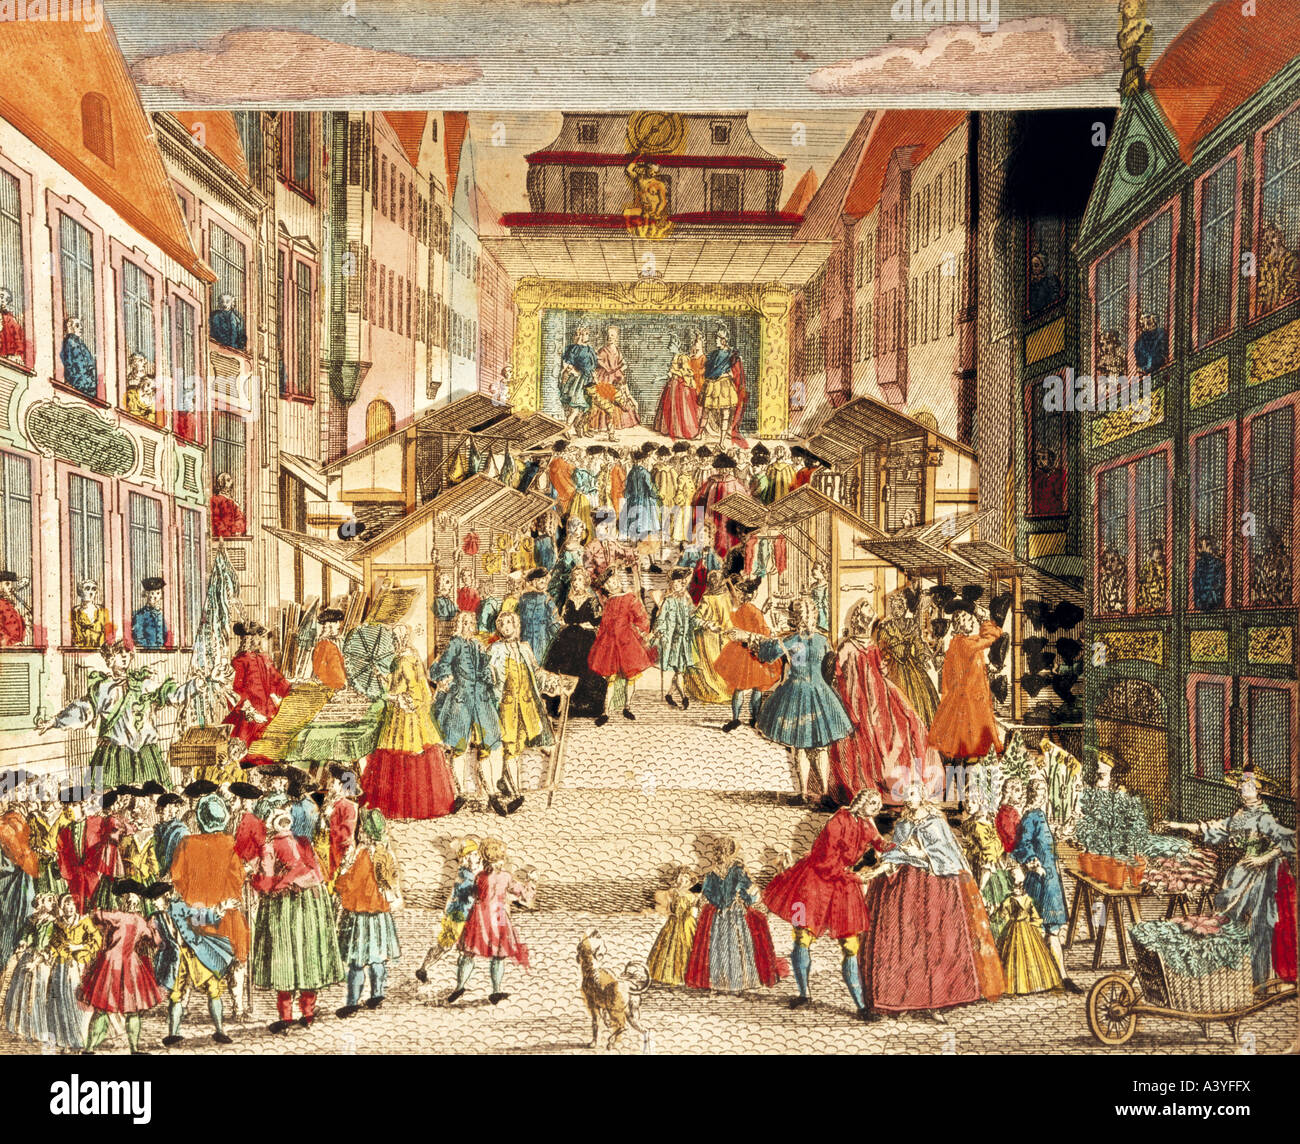 festivity, fairs, scenery in five settings, Augsburg, mid 18th century, private property, historical, historic, - Stock Image